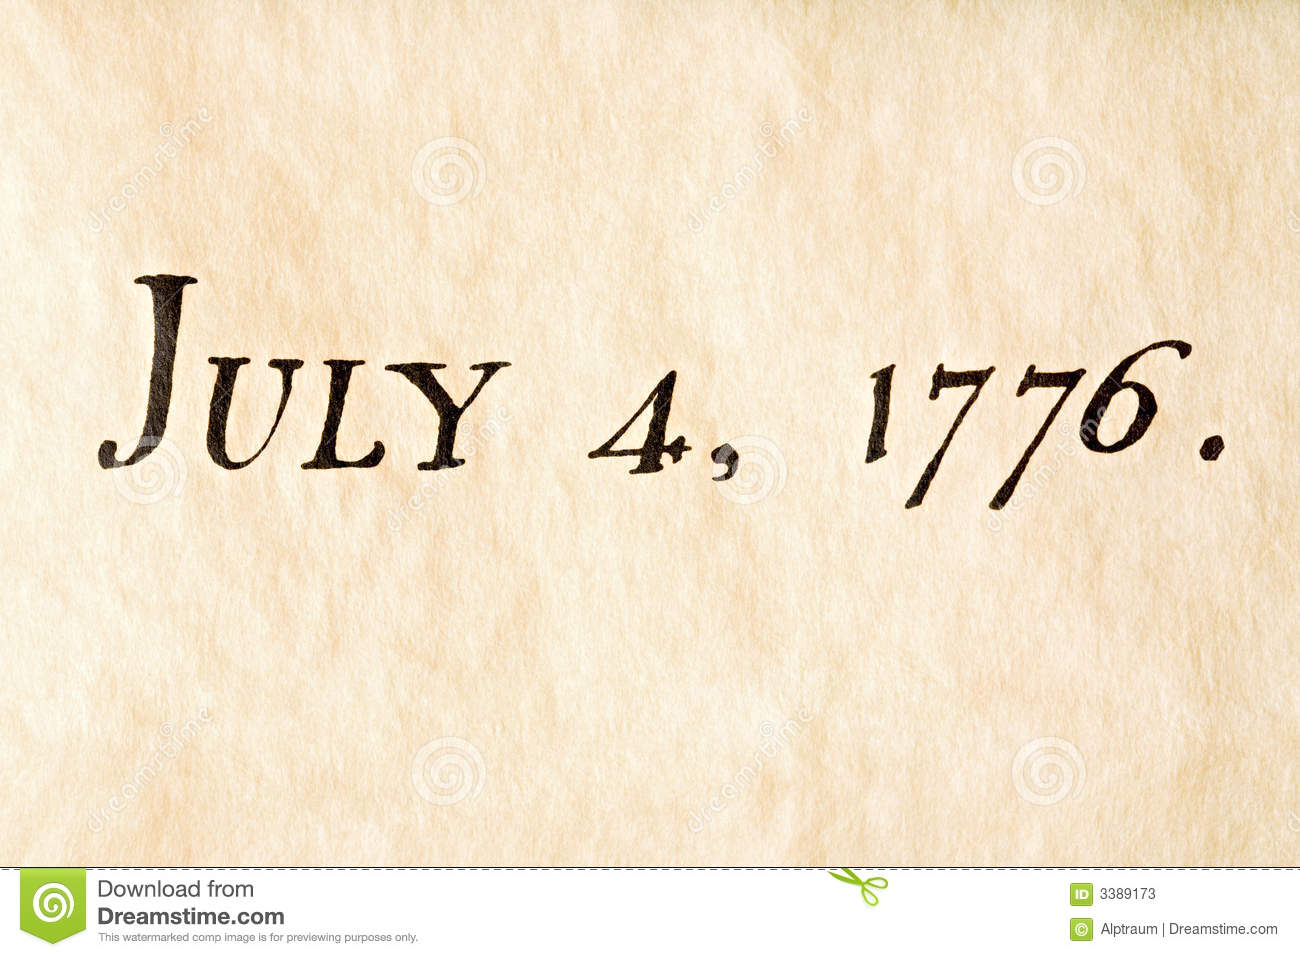 Fourth of july 1776 stock image  Image of writing, history - 3389173